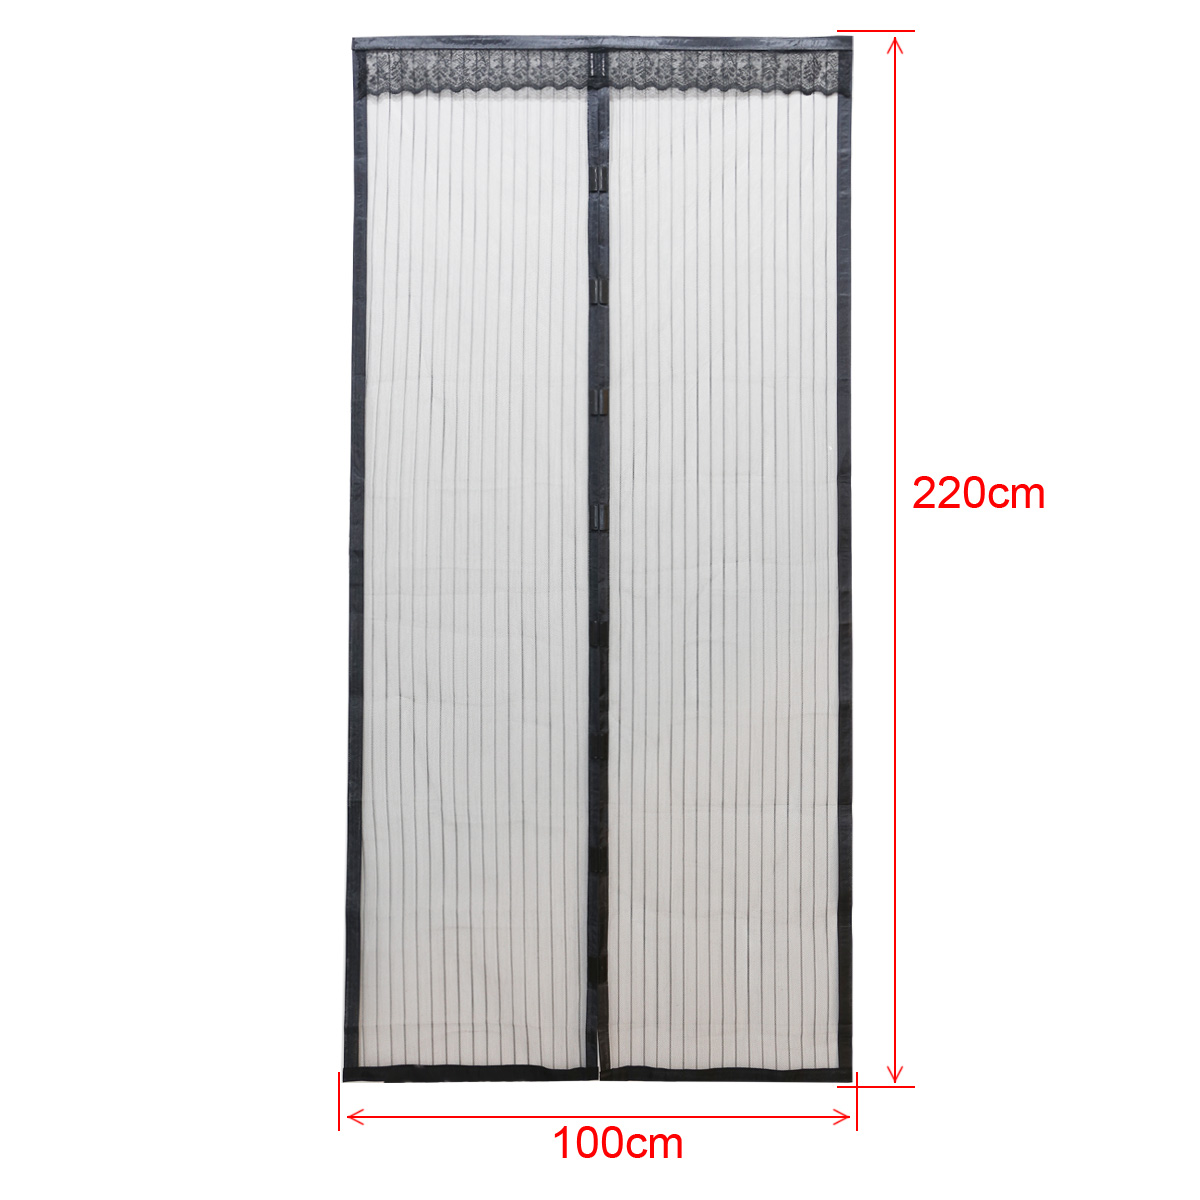 2 Size Mesh Door Curtain Magnetic Insect Mosquito Screen Net White Black Ebay